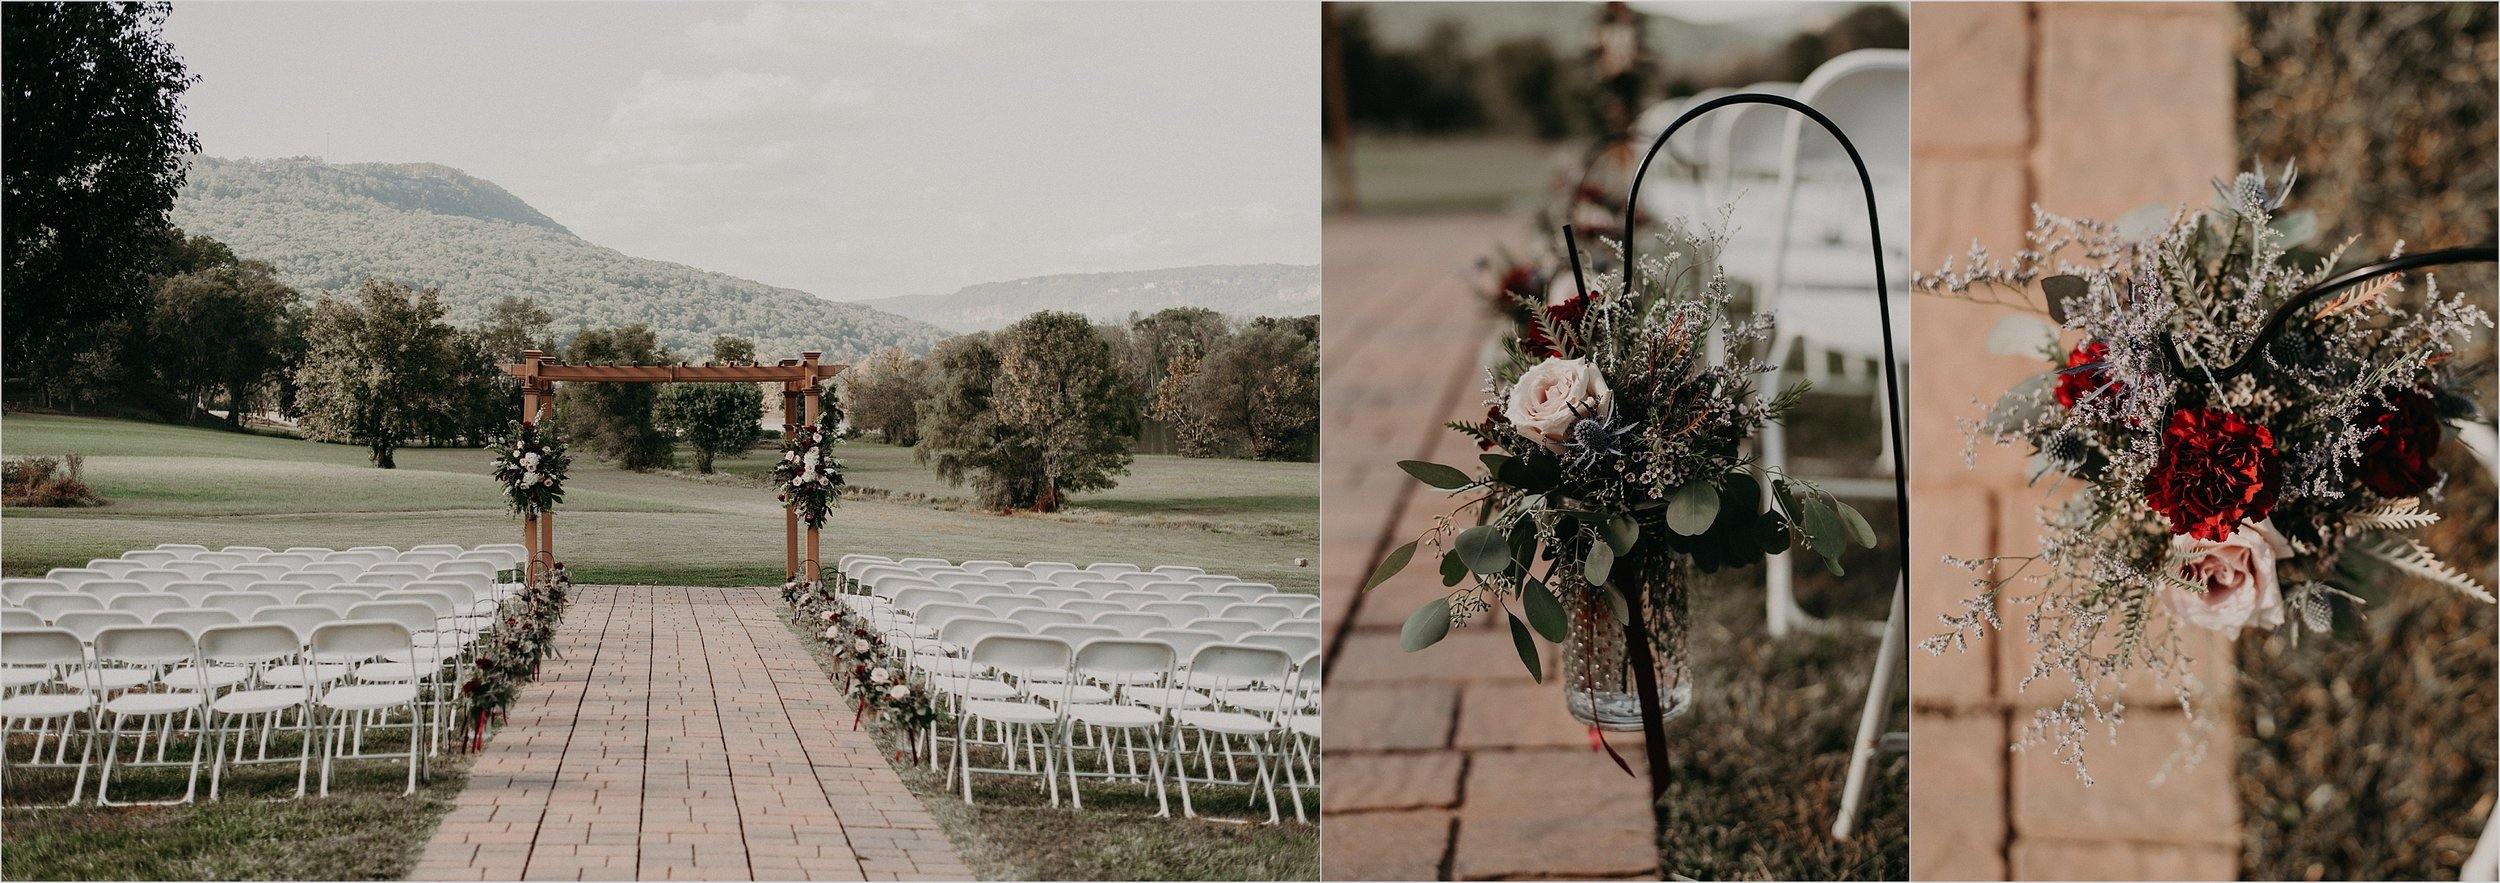 Ceremony florals and details with mountains in background of Tennessee